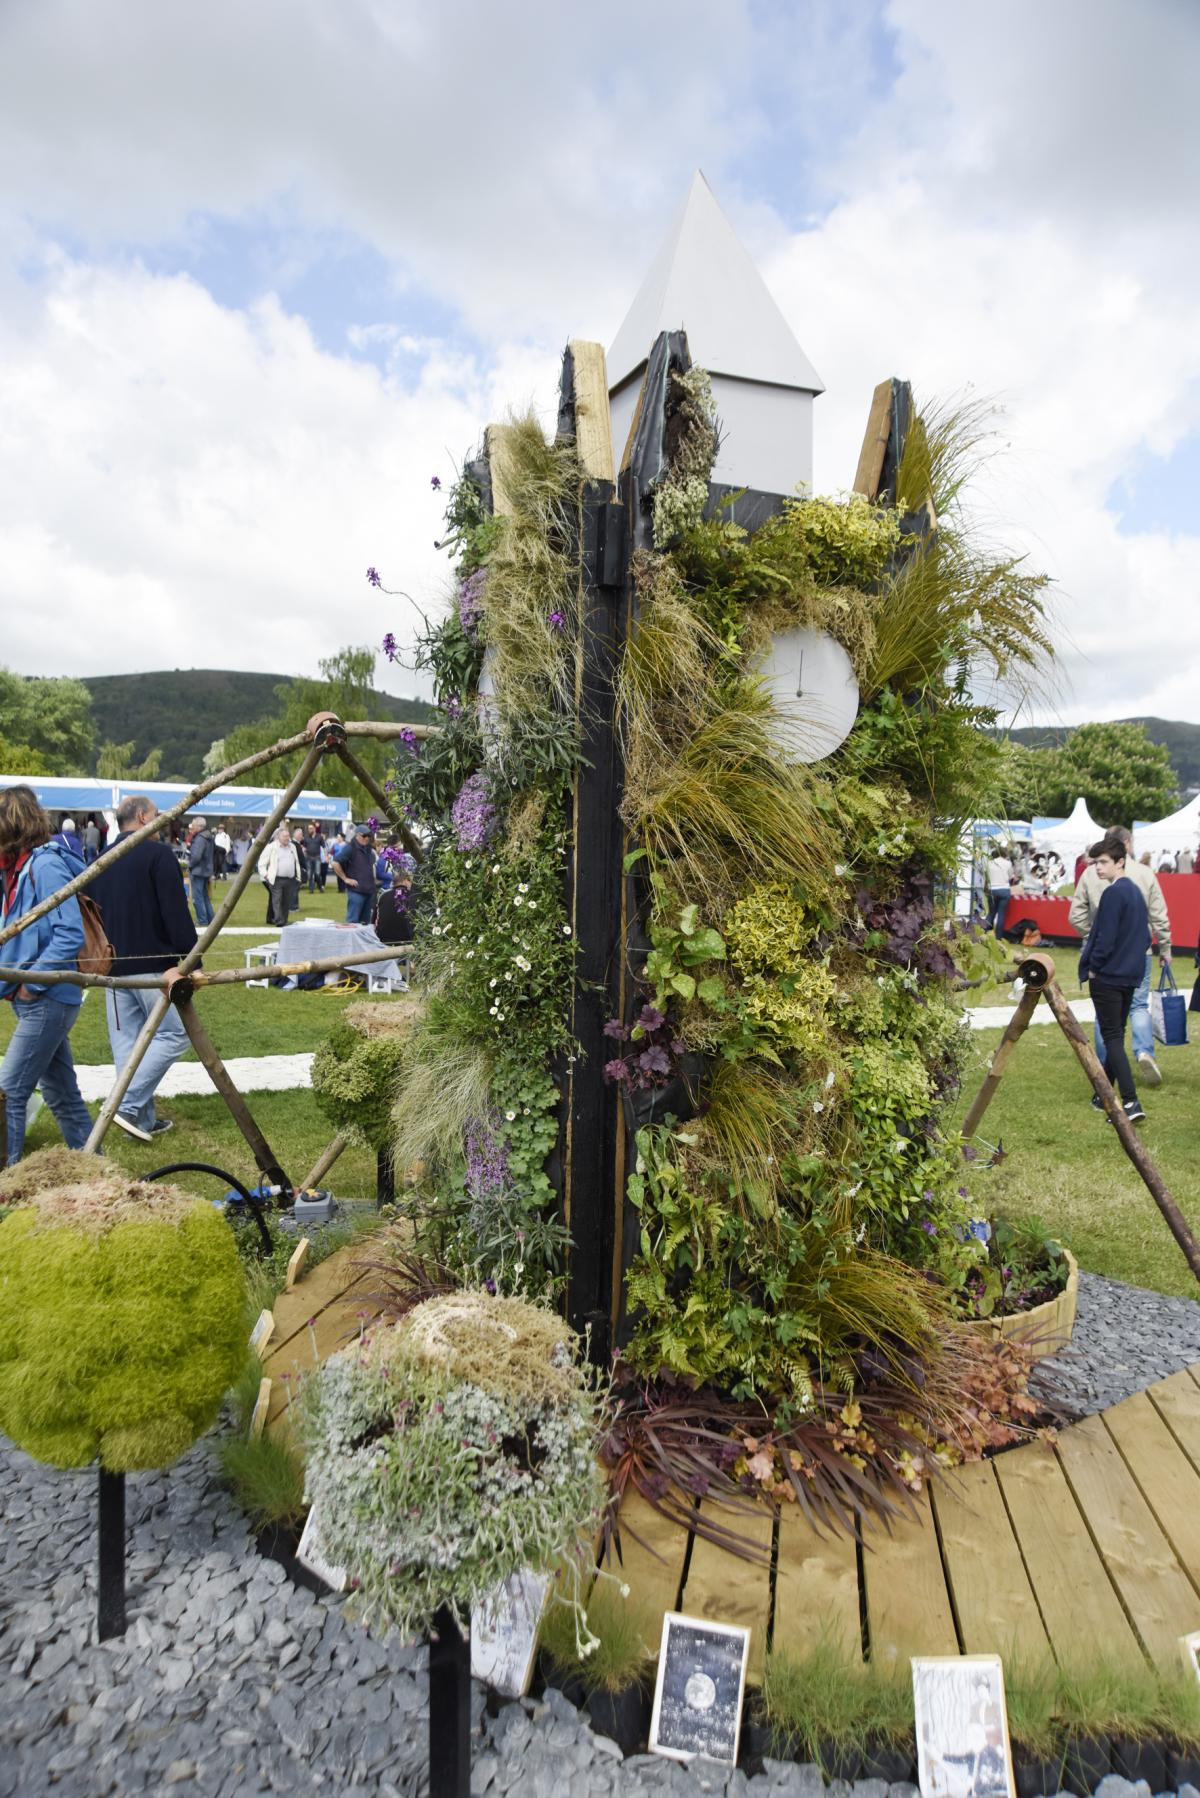 66 pictures from the 2017 rhs malvern spring festival held at the